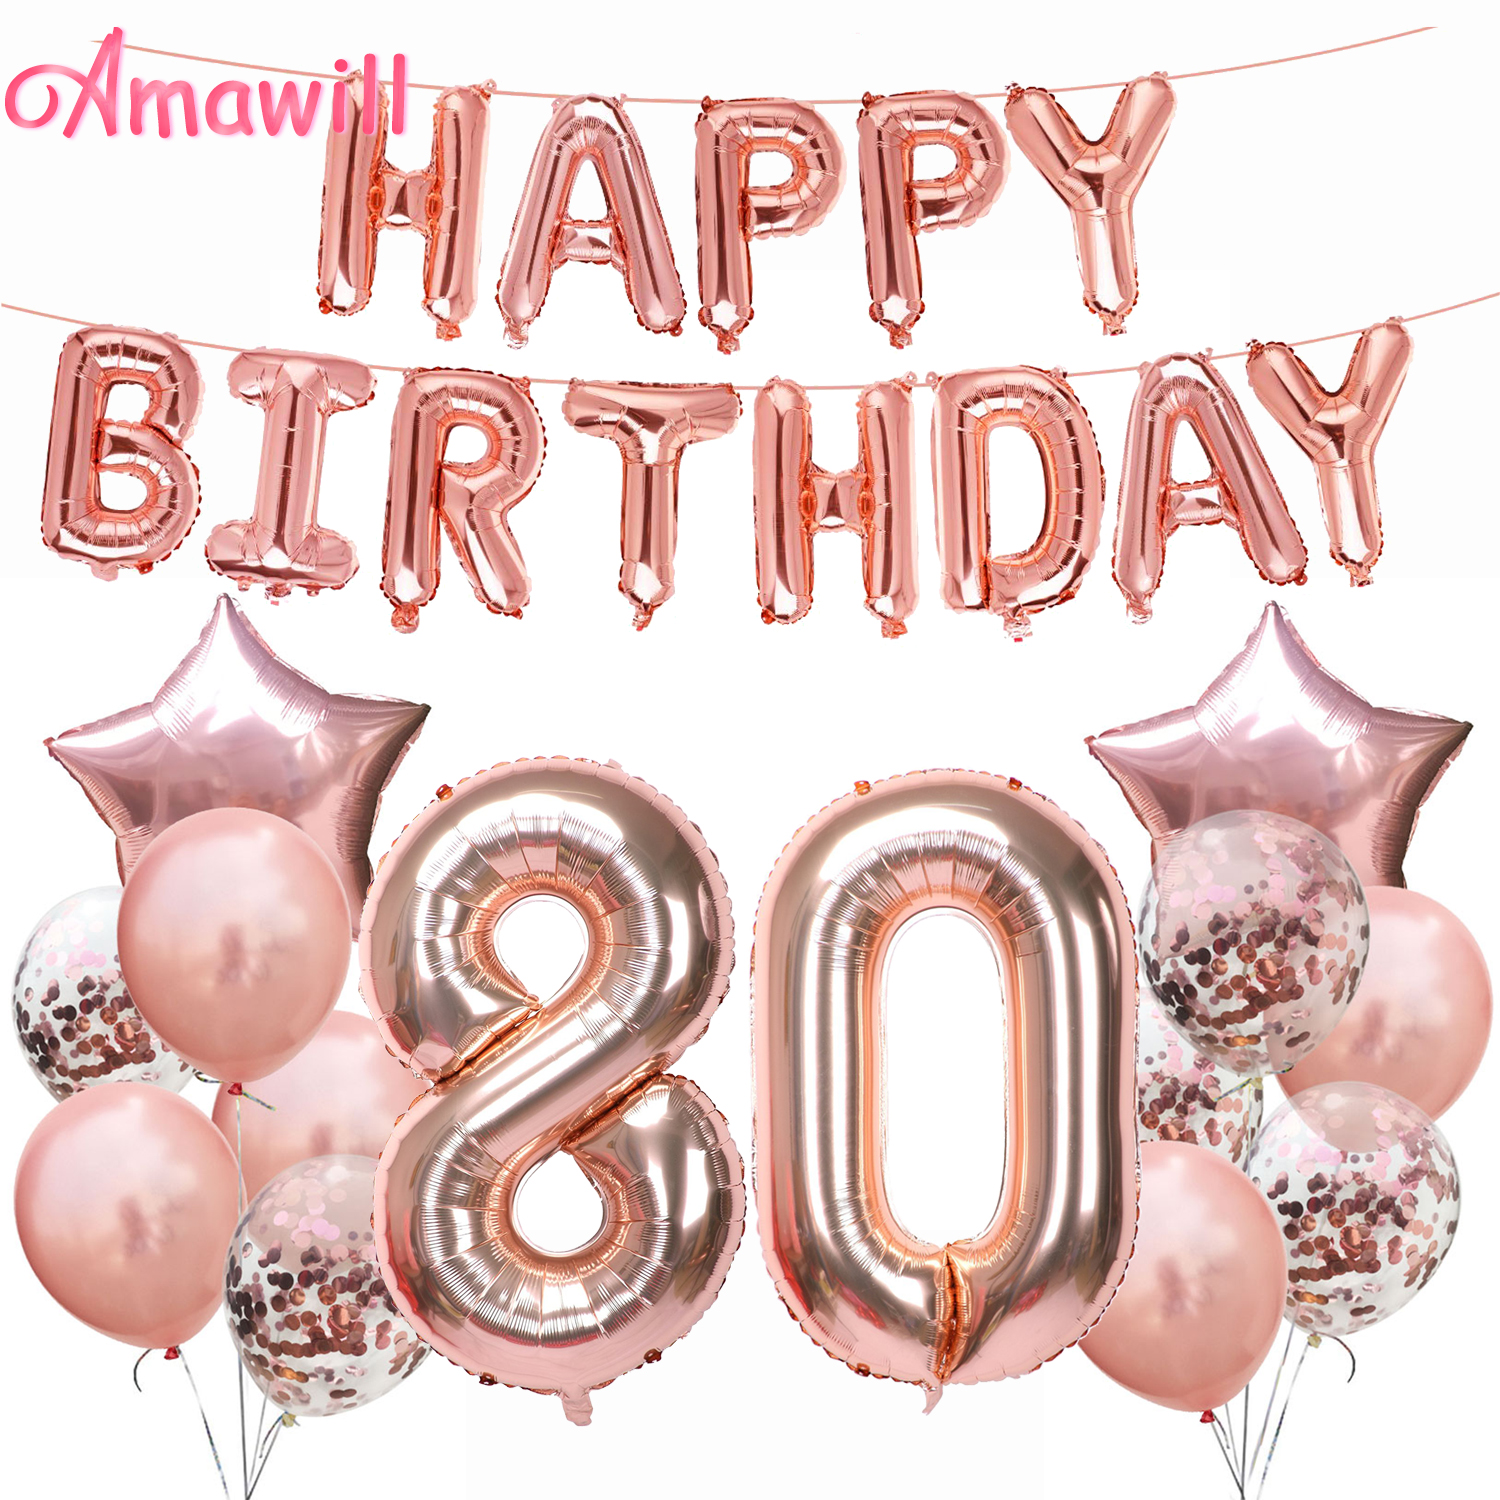 Amawill Prefect 80 Years Old Party Supplies Rose Gold Happy Birthday Foil Balloon 80th Birthday Party Decorations Adult 75D image